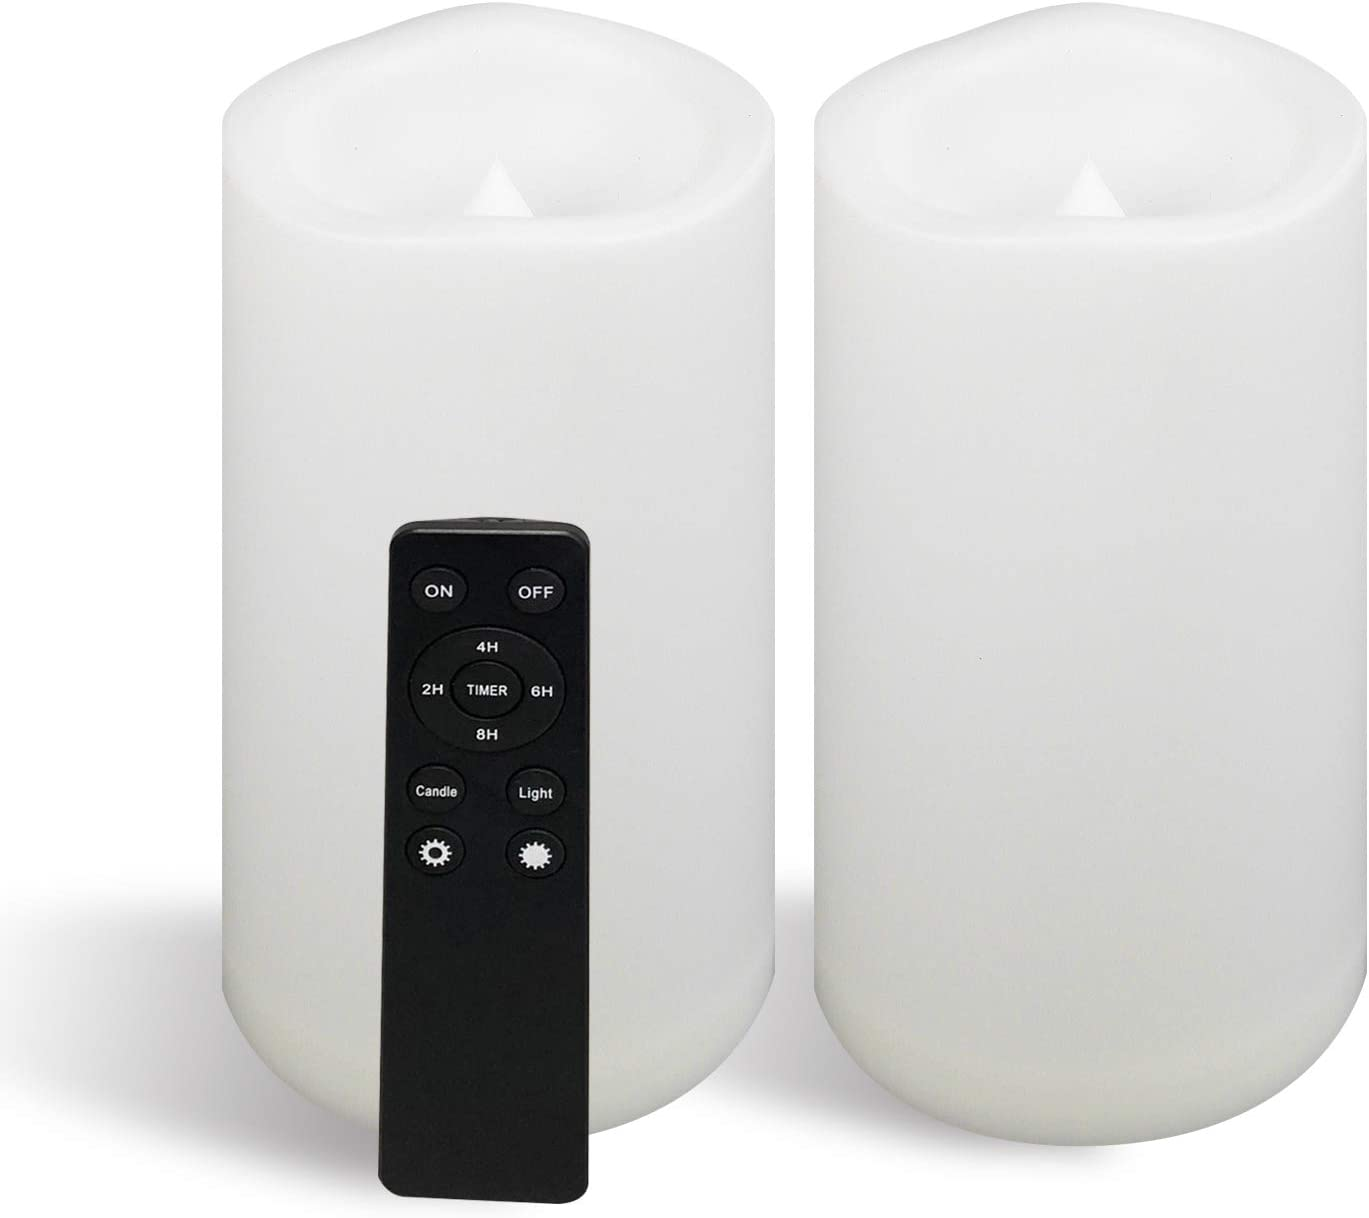 """2 Large Outdoor Waterproof Battery Operated Flameless Candles Remote Timer 4""""(D)x8""""(H) Big White Plastic Resin Bright Flickering Electric LED Pillar Lantern Patio Garden Home Wedding Party Decorations"""